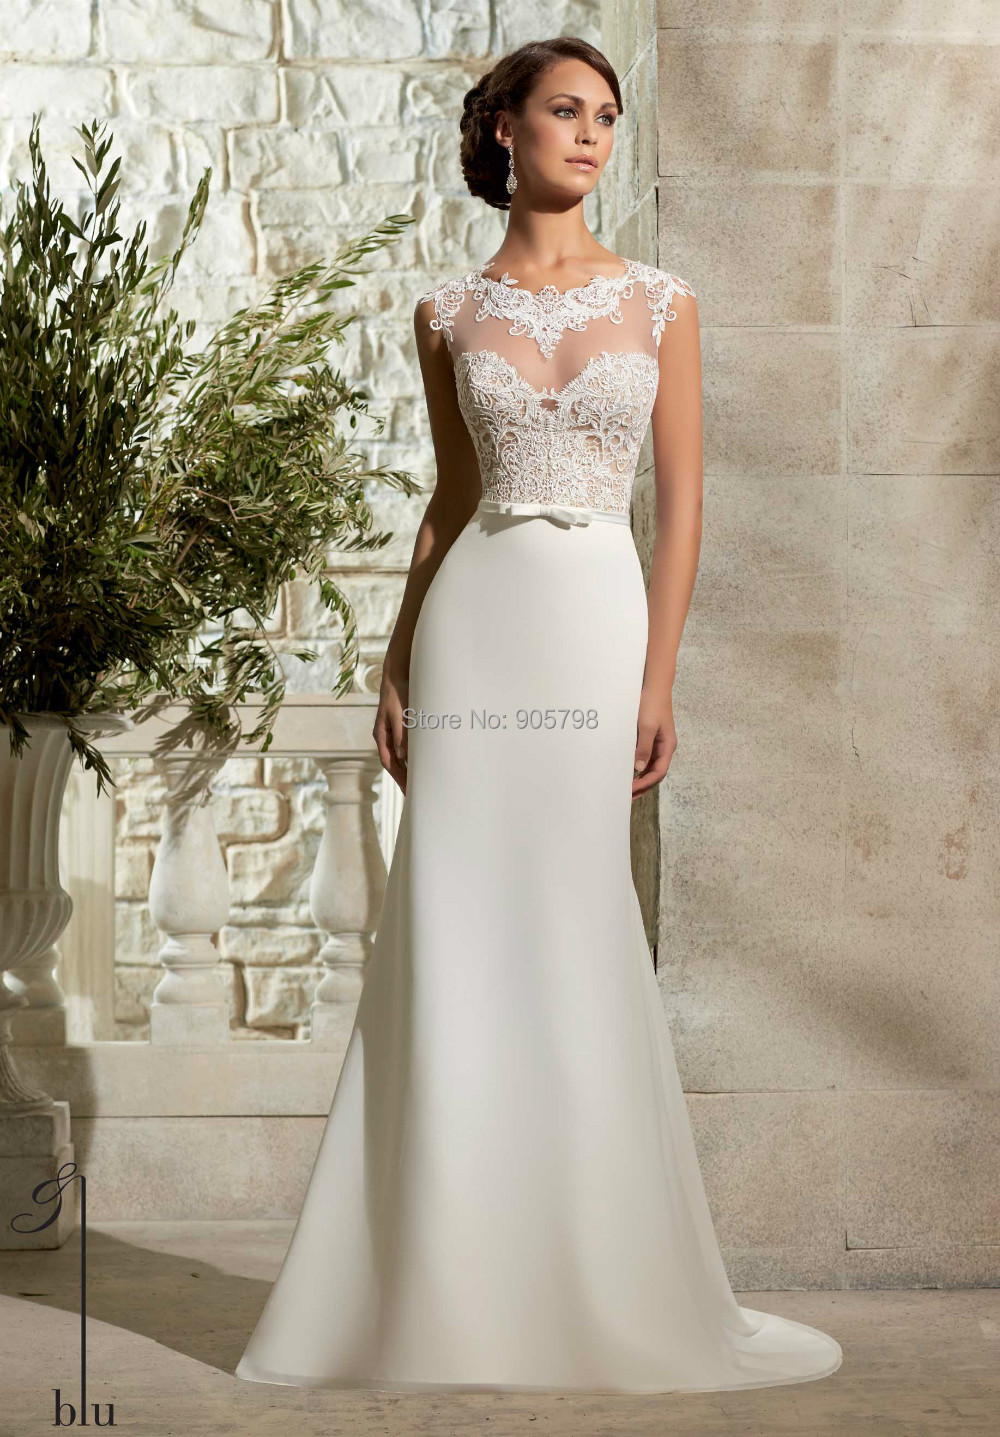 2015 Europe Style See Through Bodice Lace Appliqued Chiffon Mermaid Style  Wedding Dress In Wedding Dresses From Weddings U0026 Events On Aliexpress.com  ...